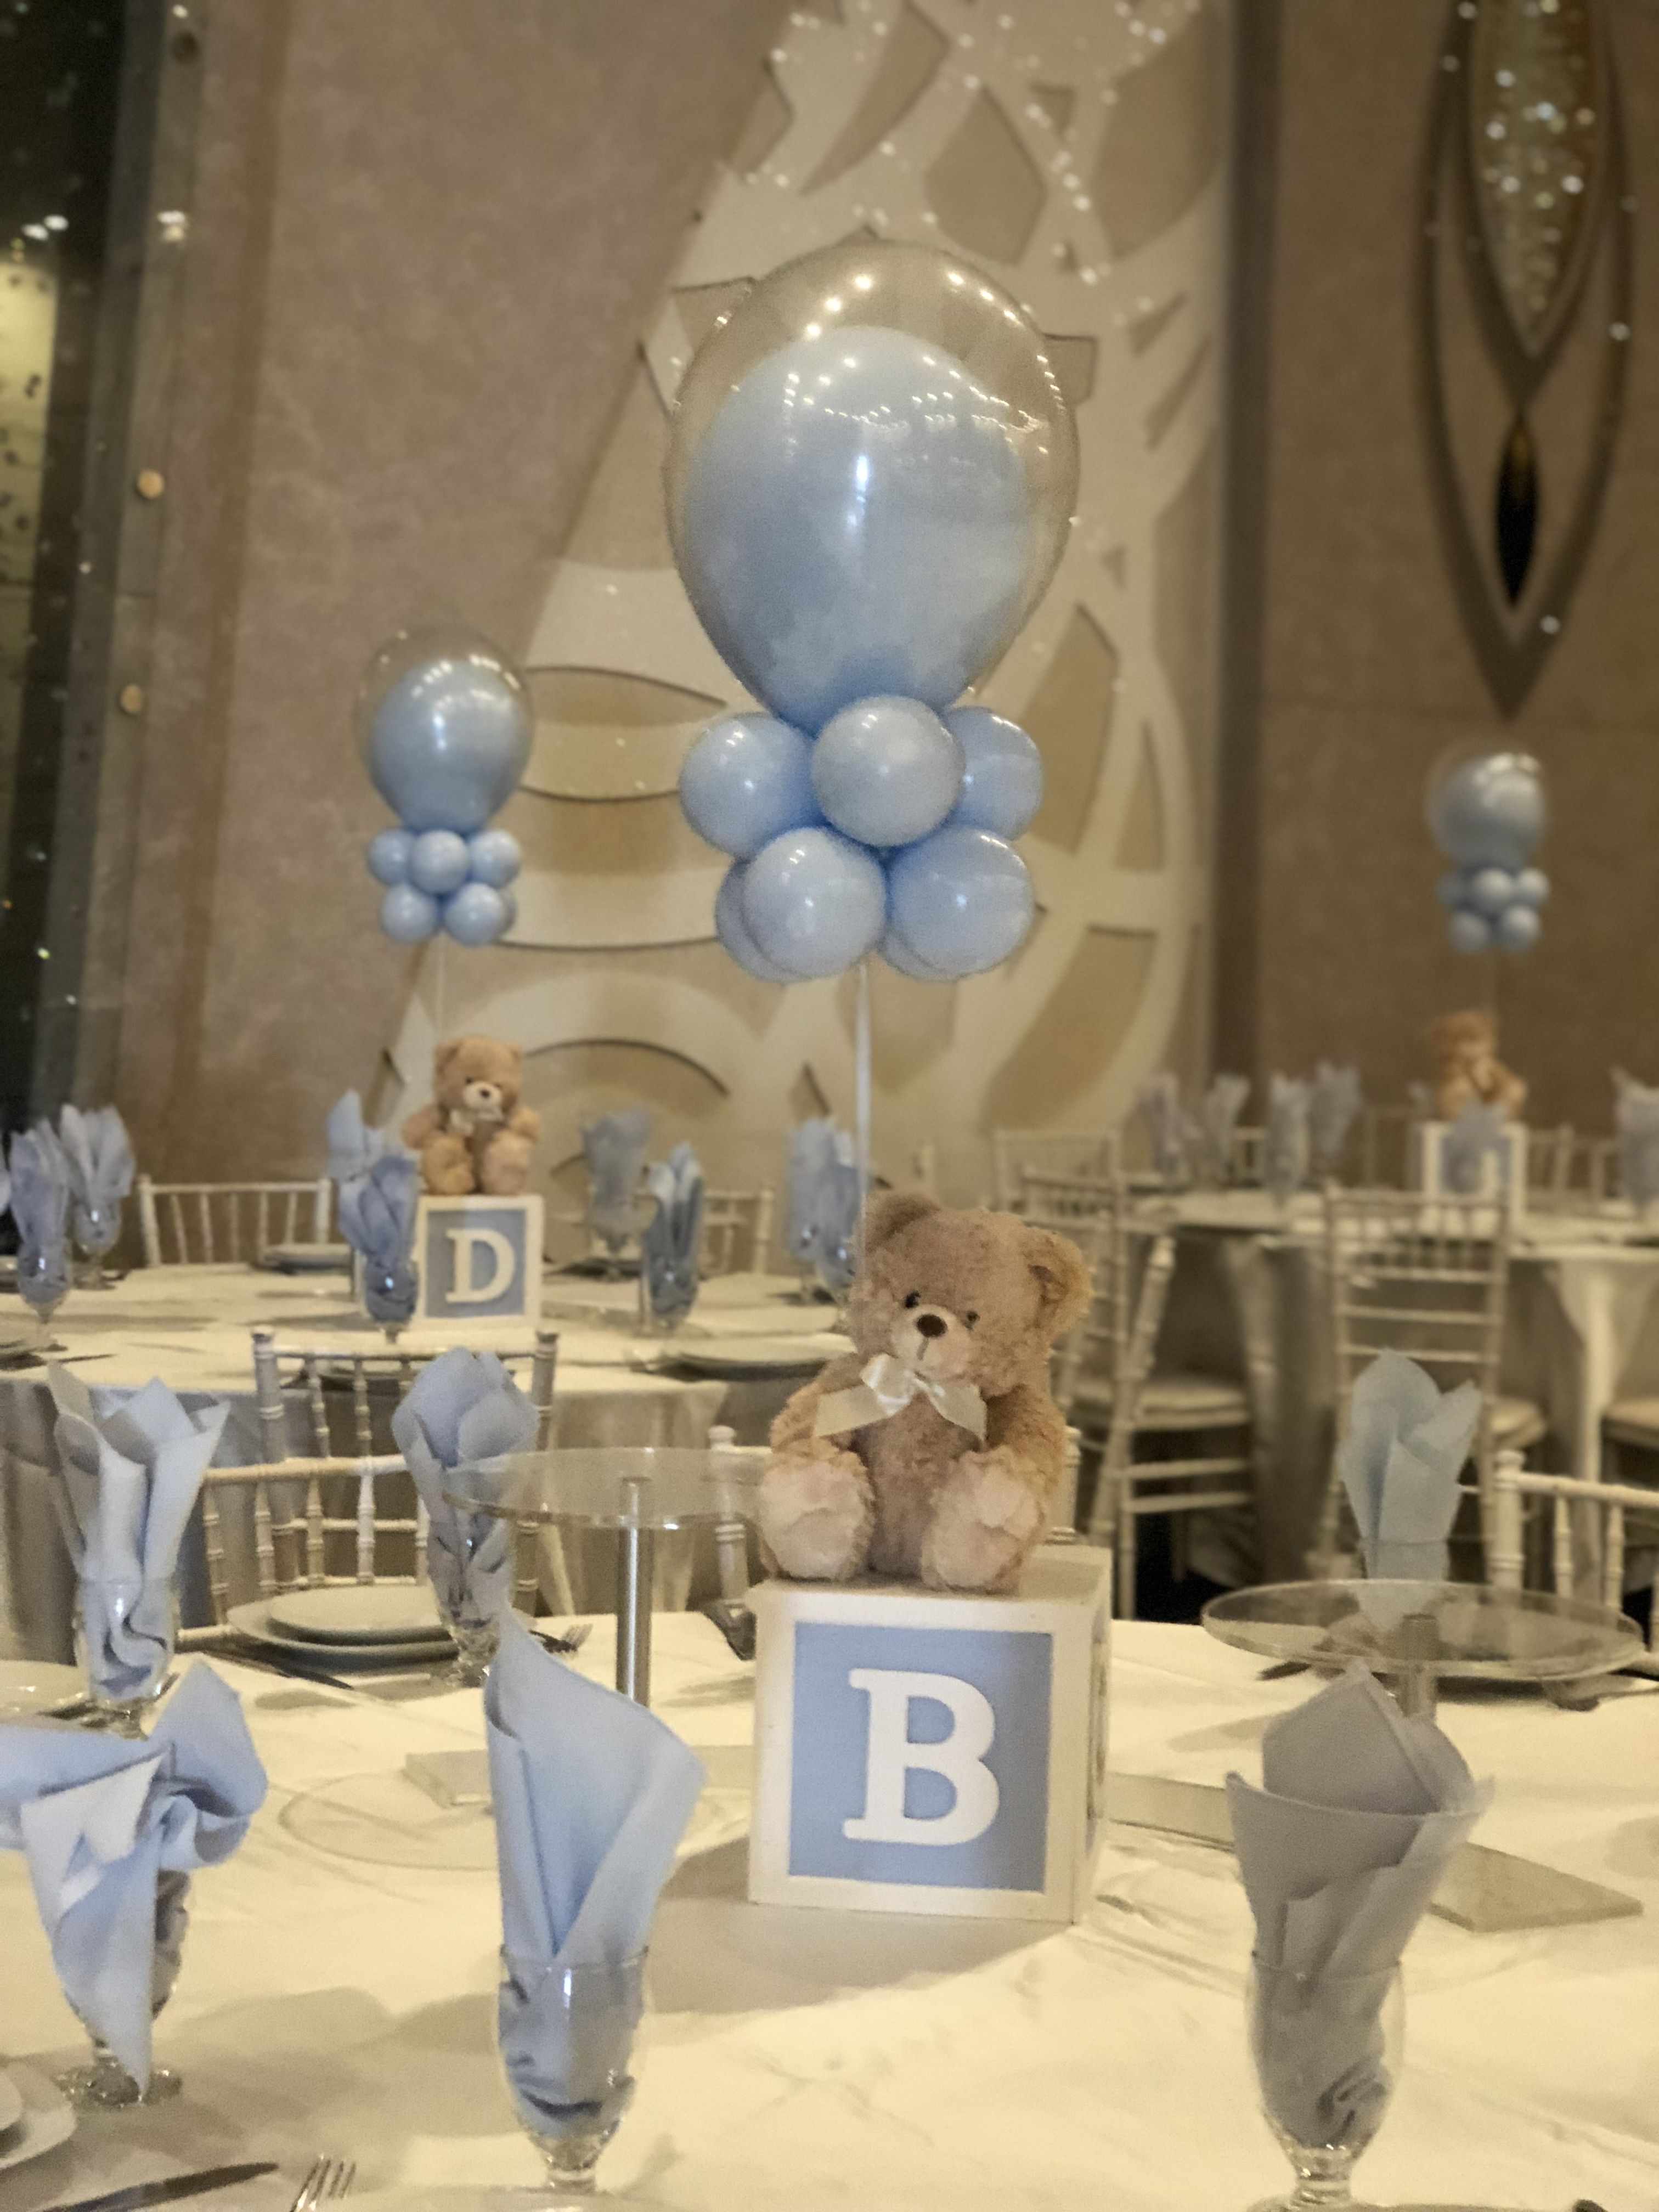 Baby Boy Baby Shower Decorating Tables With Blue Balloons And